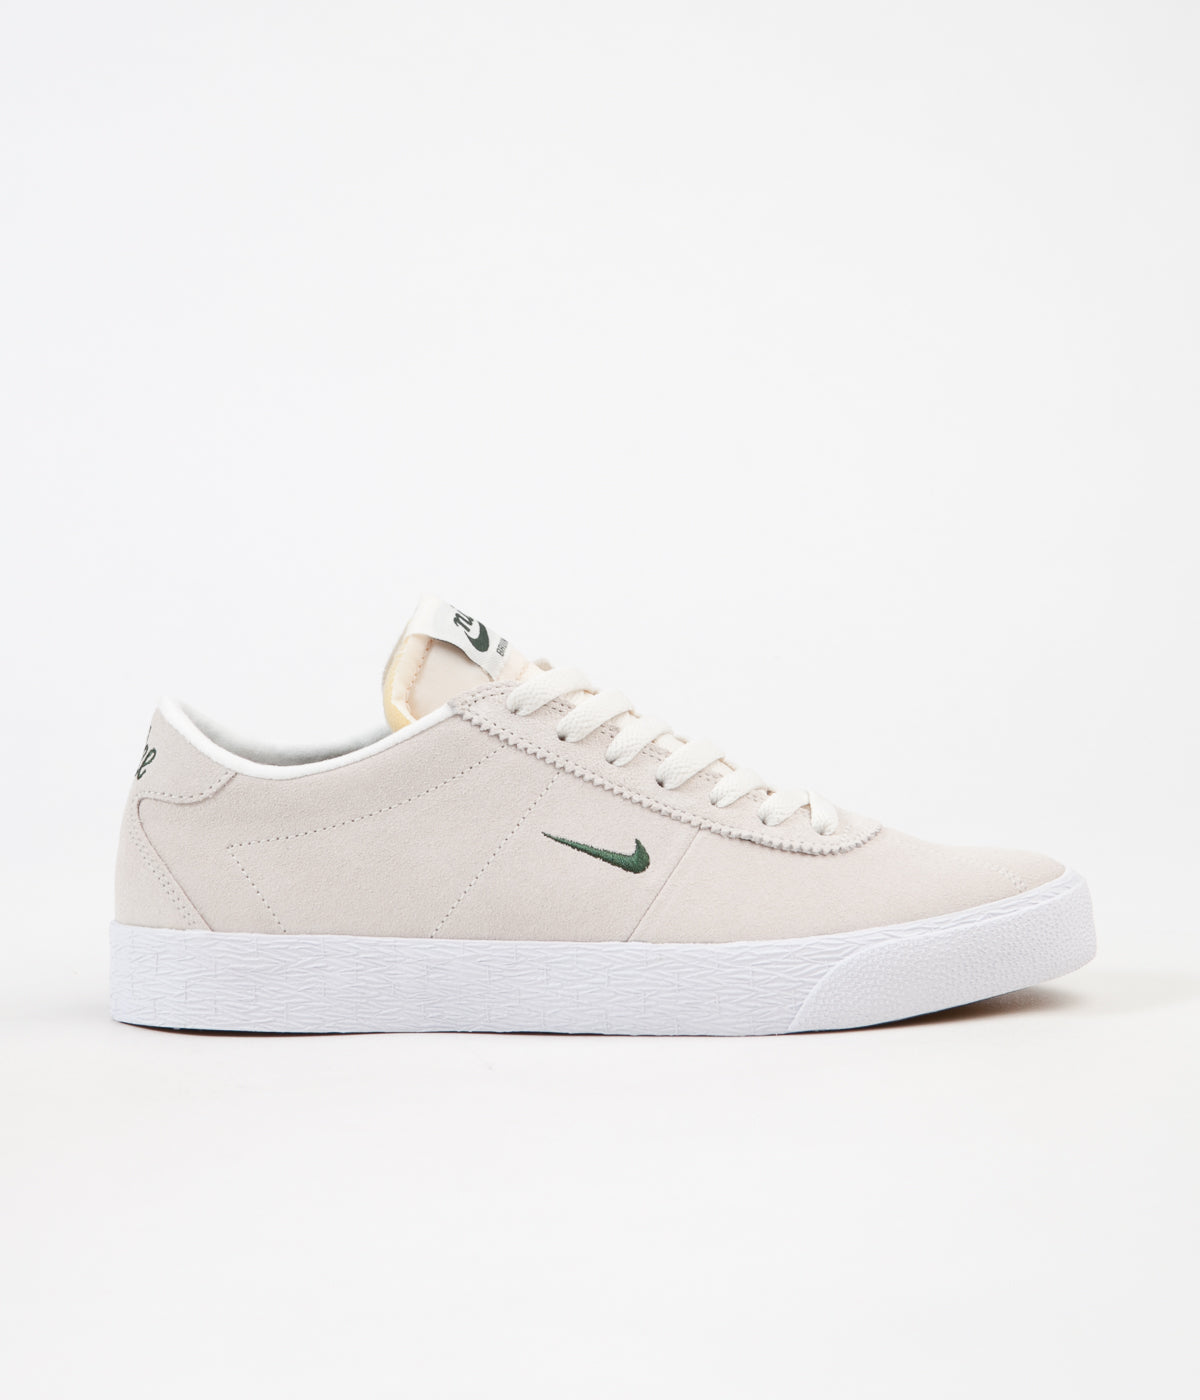 tout neuf c452b 6cb5f Nike SB Bruin Ultra Shoes - Sail / Fir - White - Gum Light ...